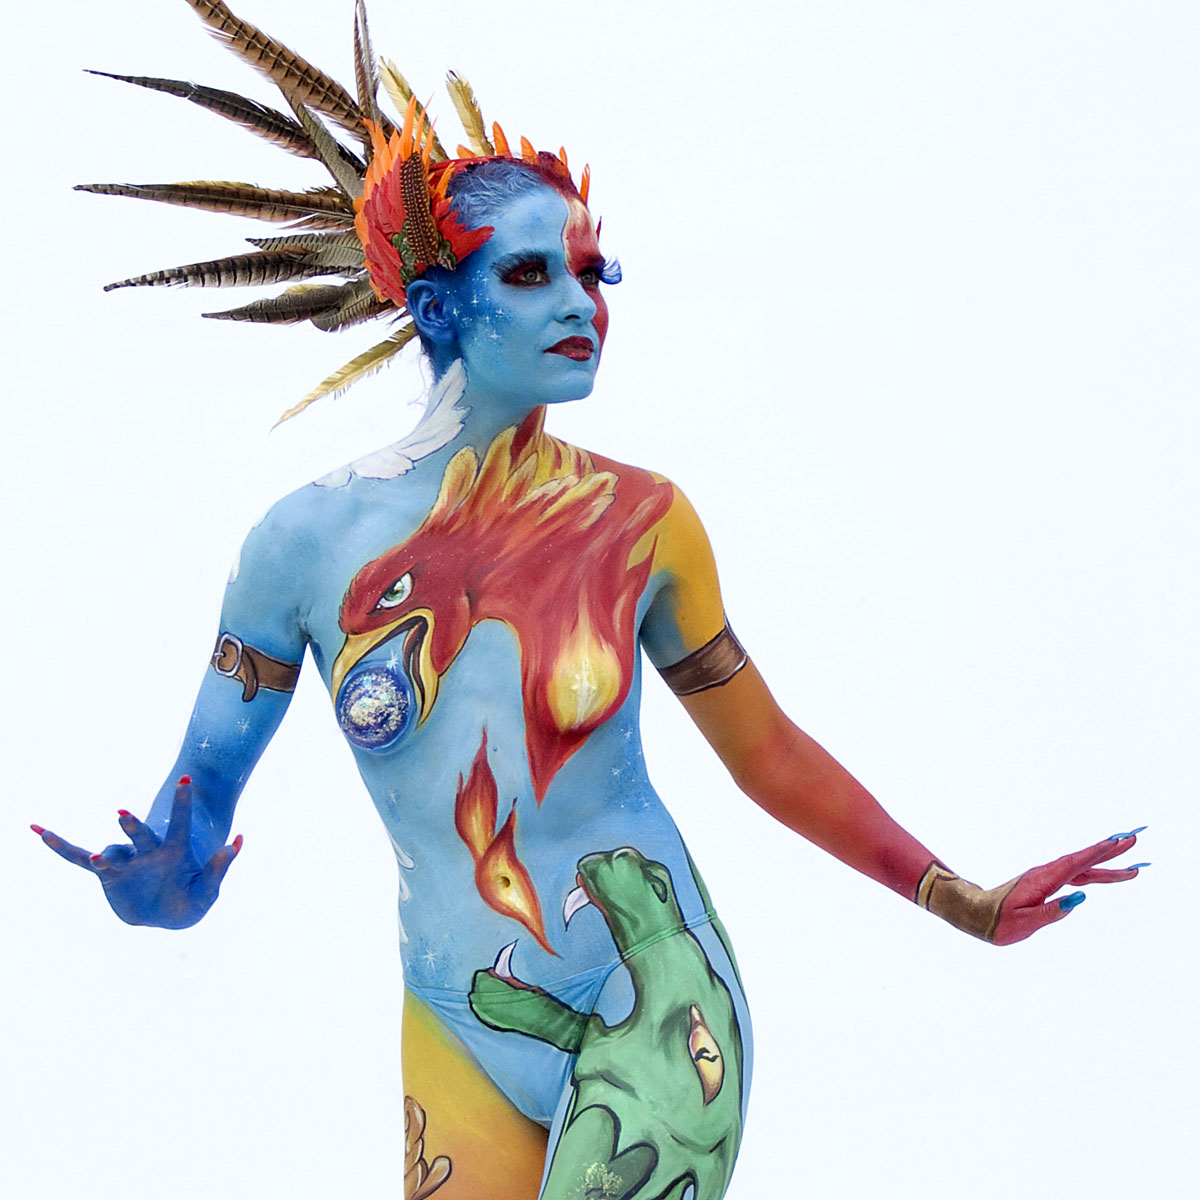 Full Body Painting Festival | Search Results | Calendar 2015